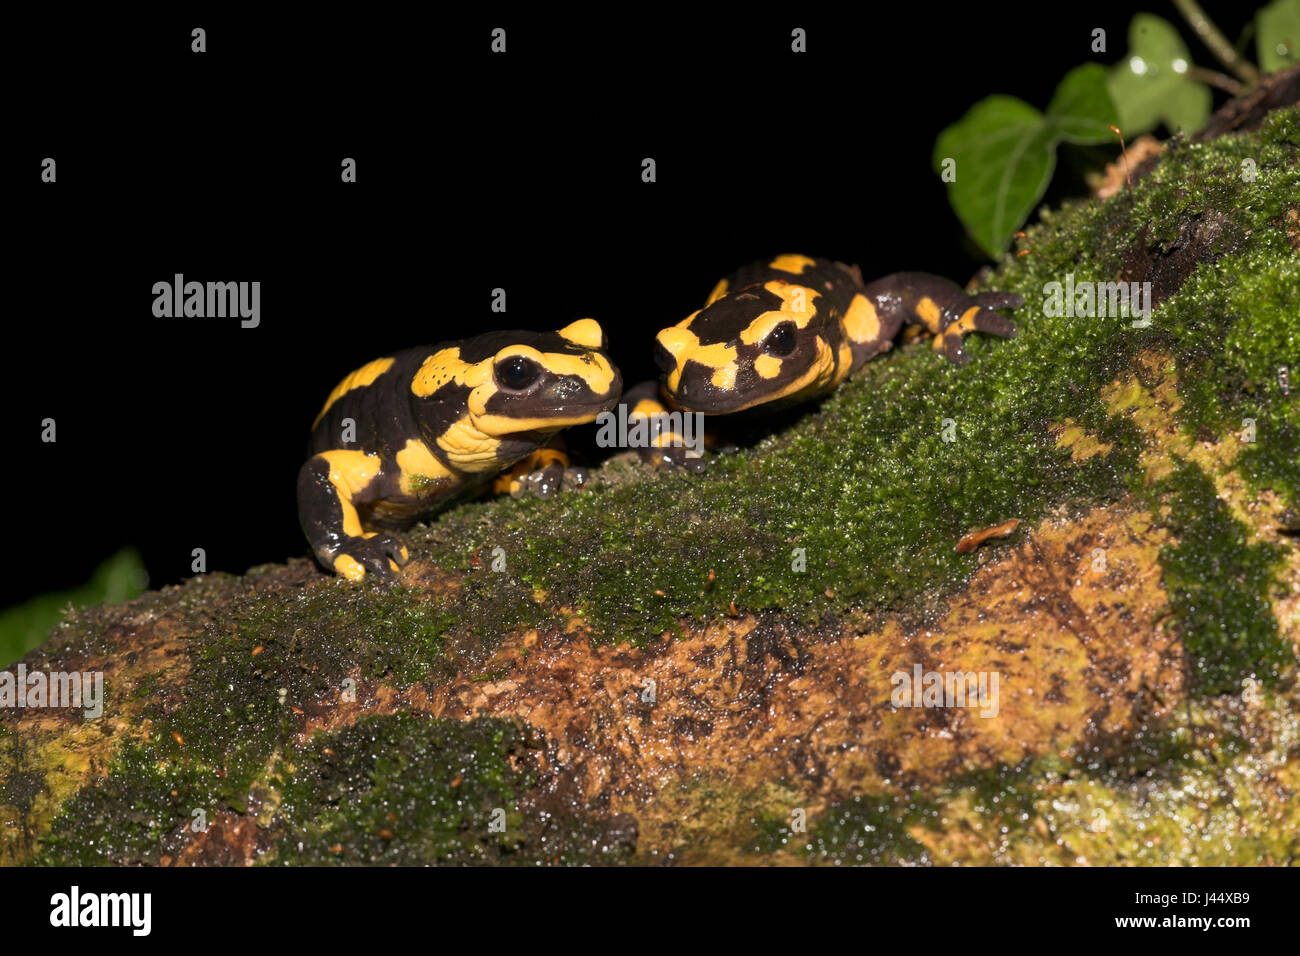 two fire salamanders look over a tree root - Stock Image